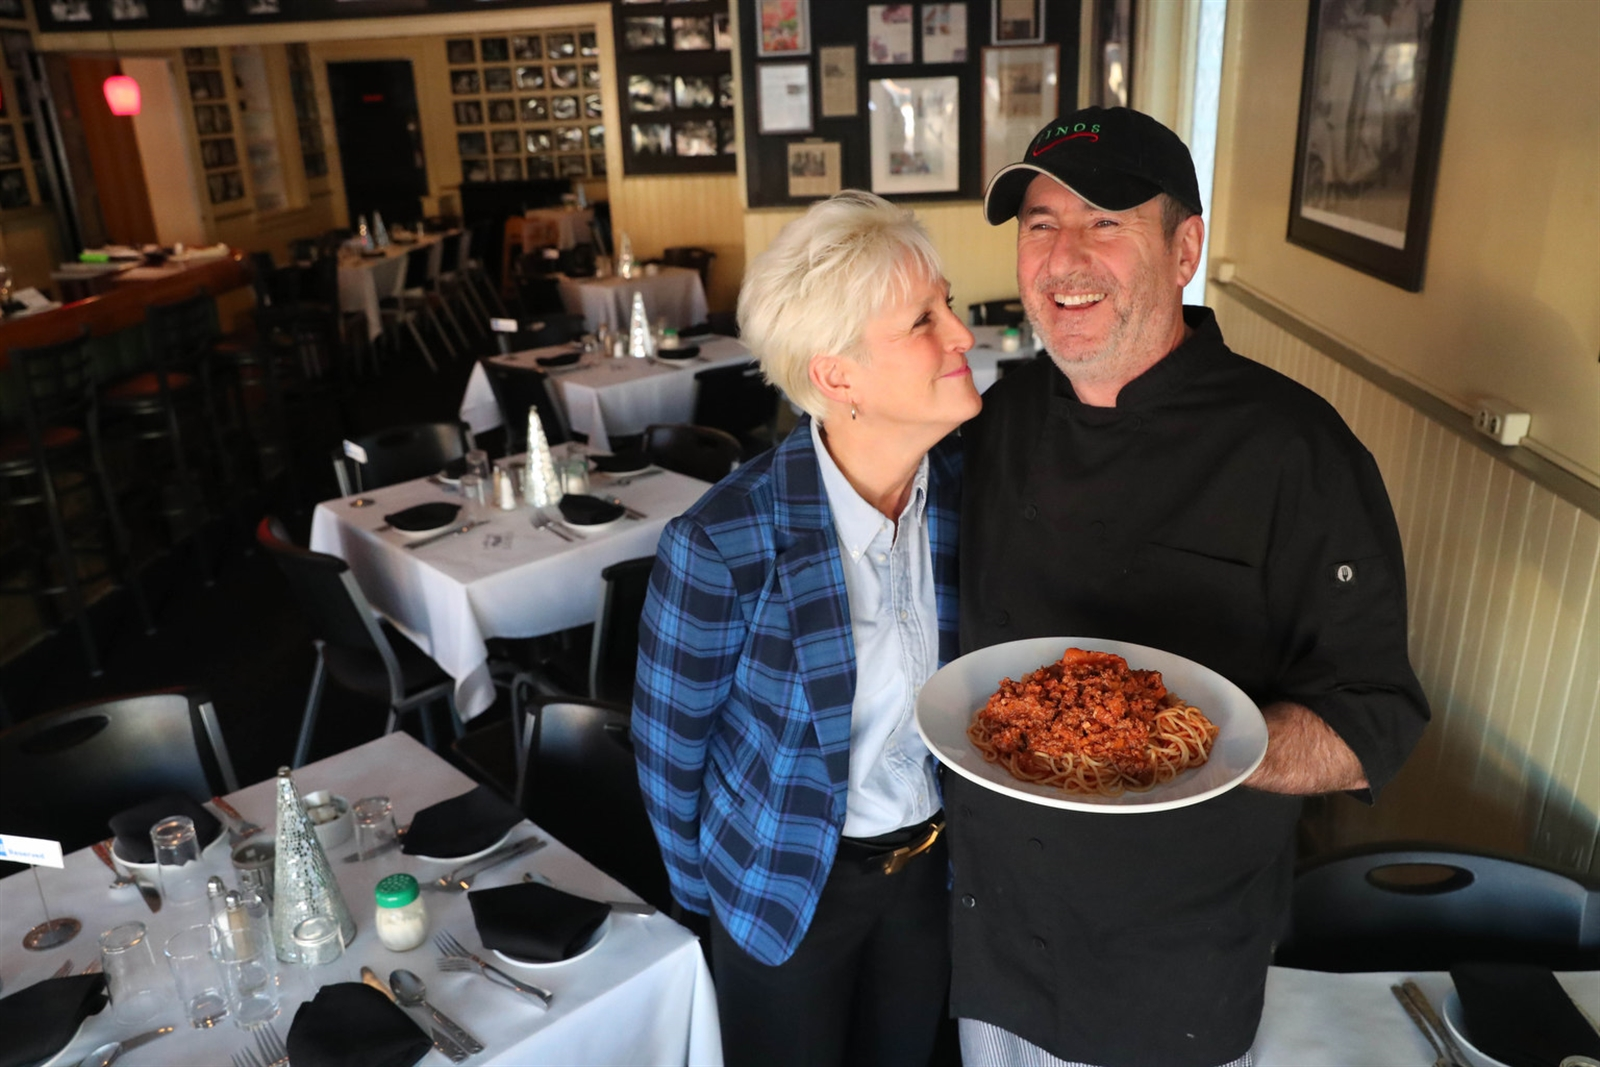 Vino's owners Kathleen and Tony Cangianiello present the spaghetti Bolognese.